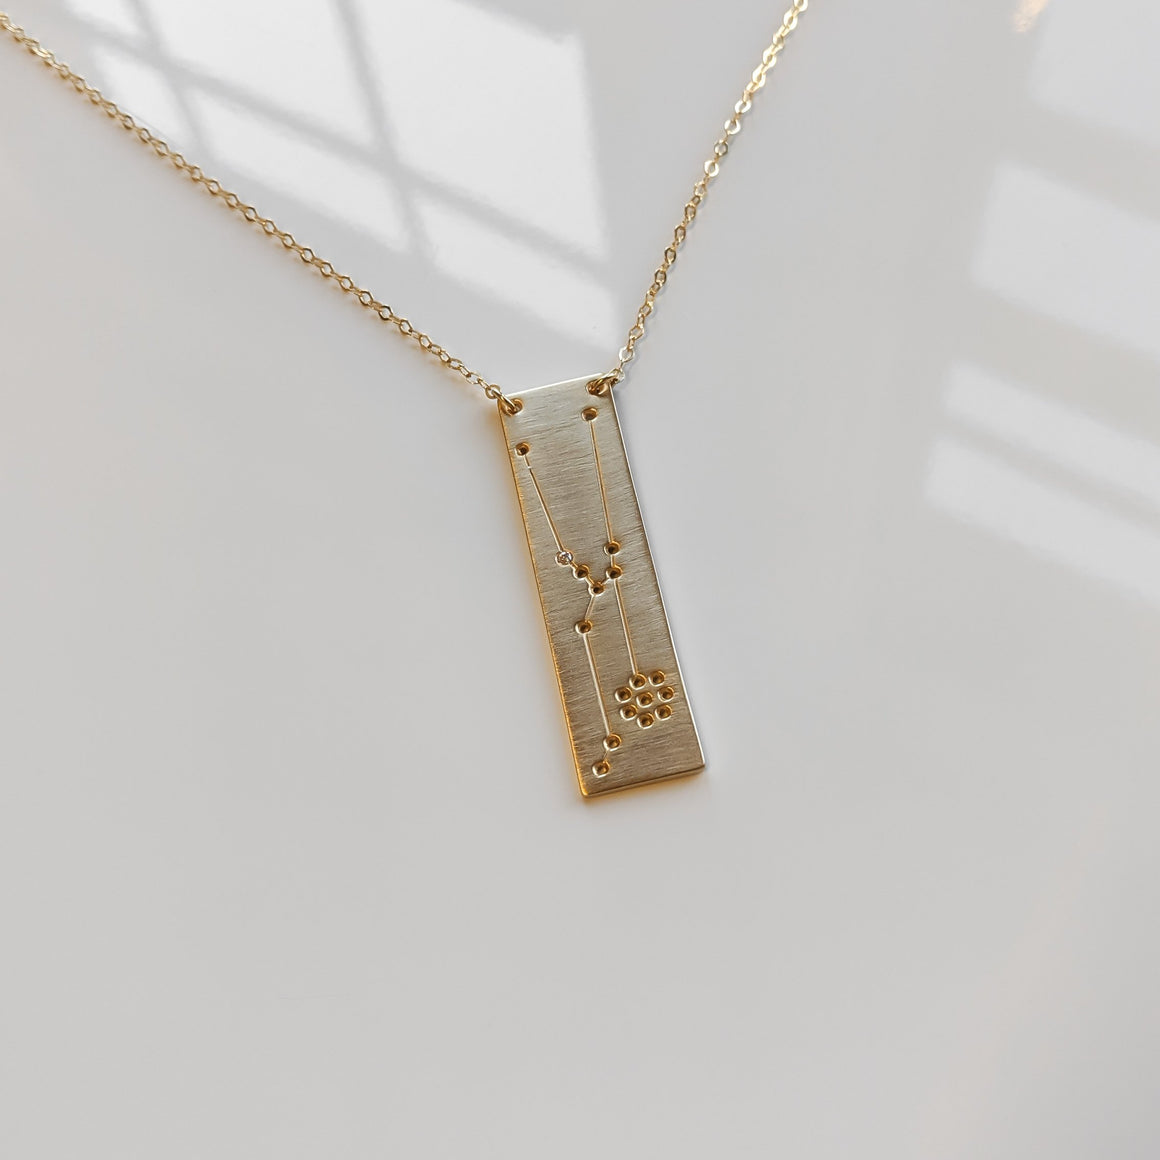 Signature Constellation Necklace in Gold with Diamond